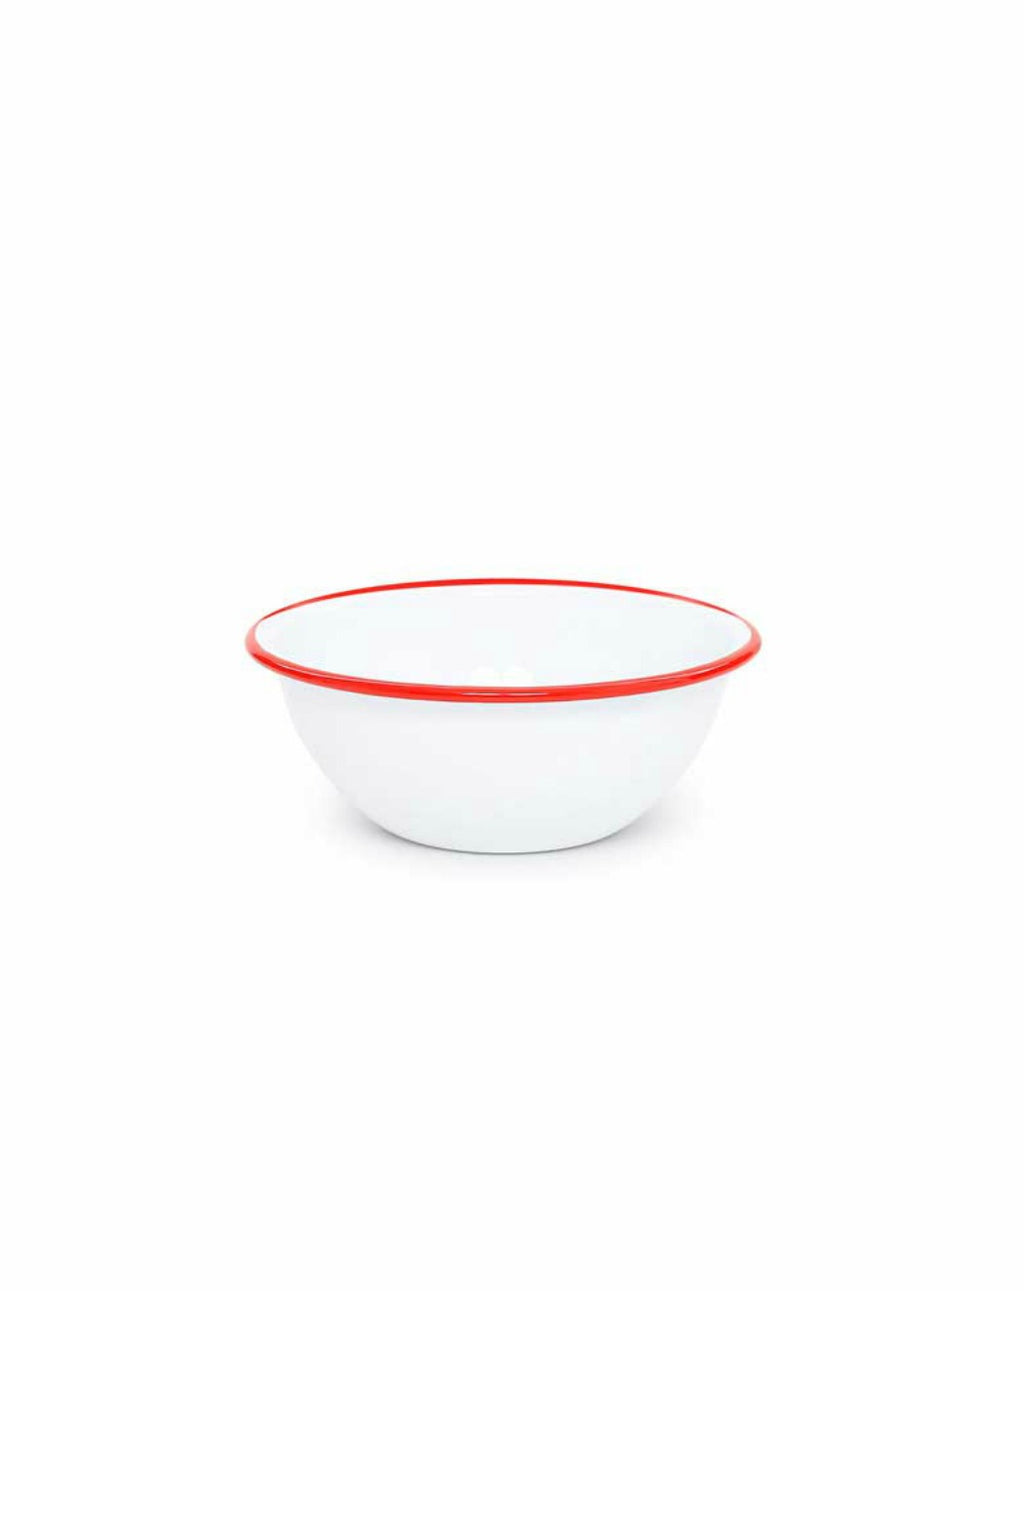 Crow Canyon Home Cereal Bowl - Red